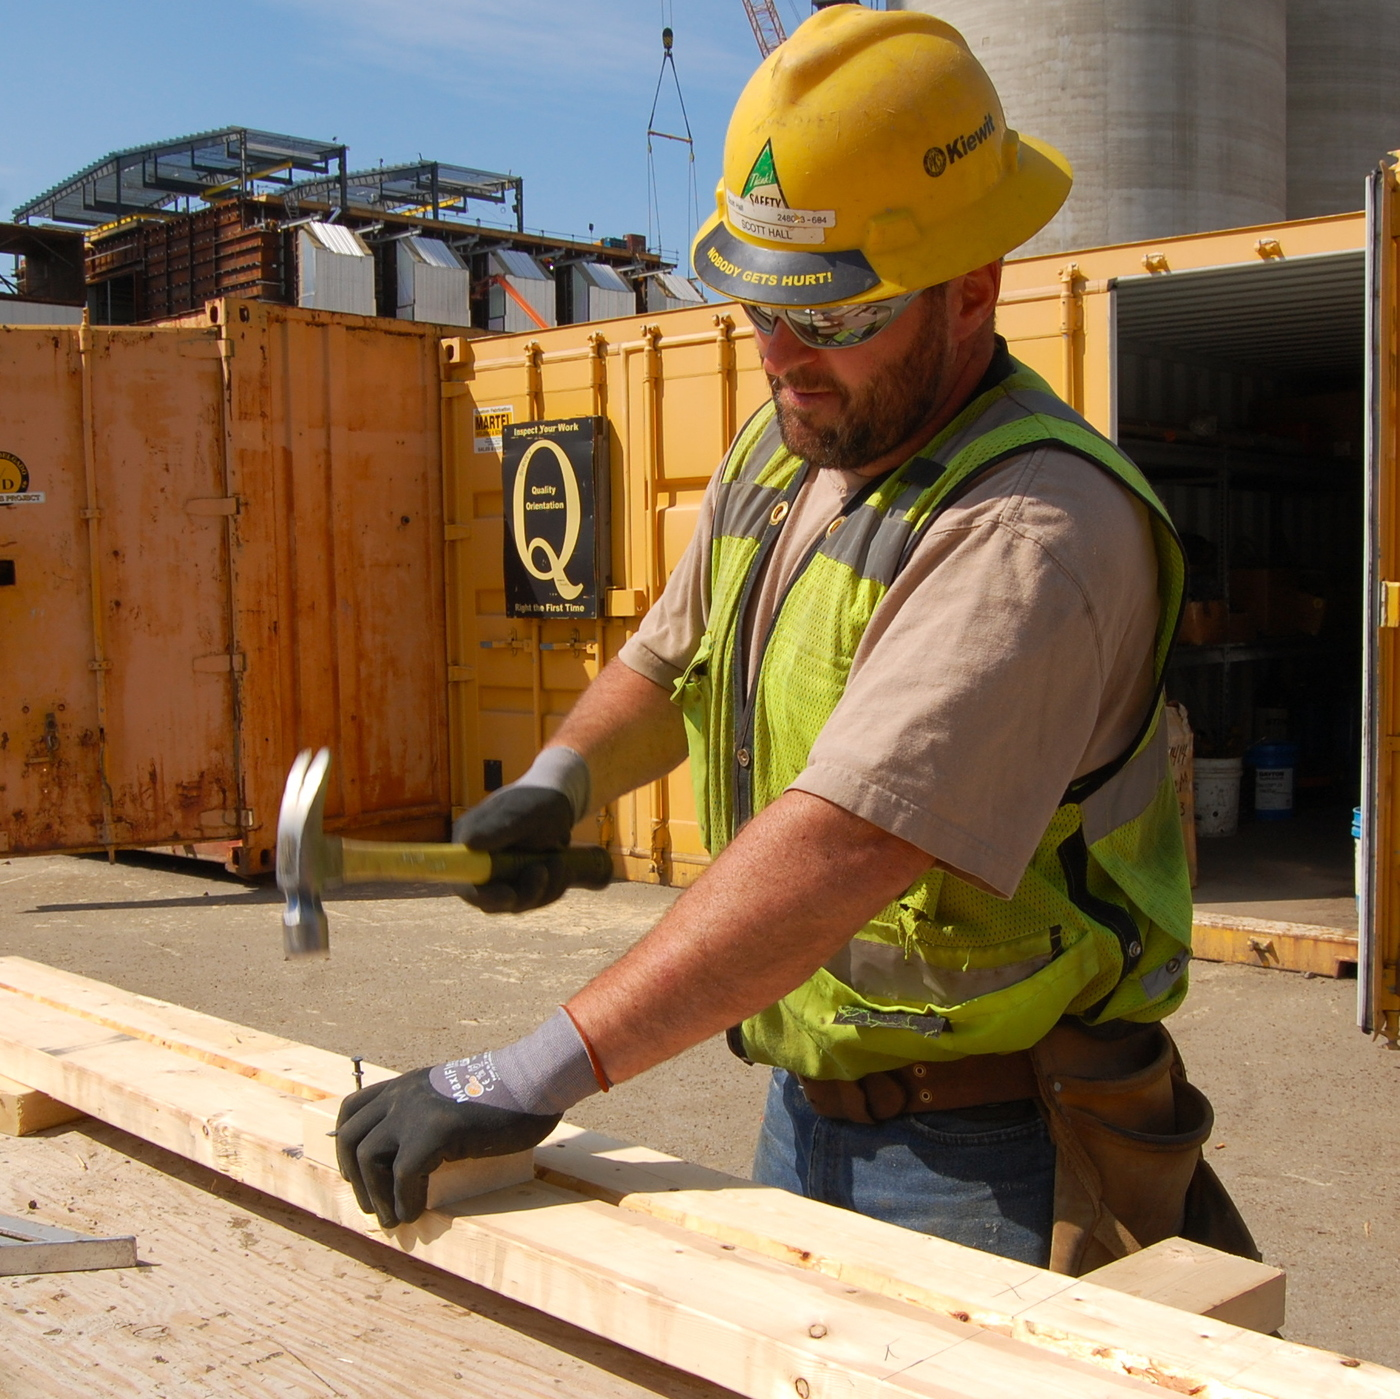 Best Work Gloves >> Best Work Gloves for Carpenters 2017 | Authorized Boots